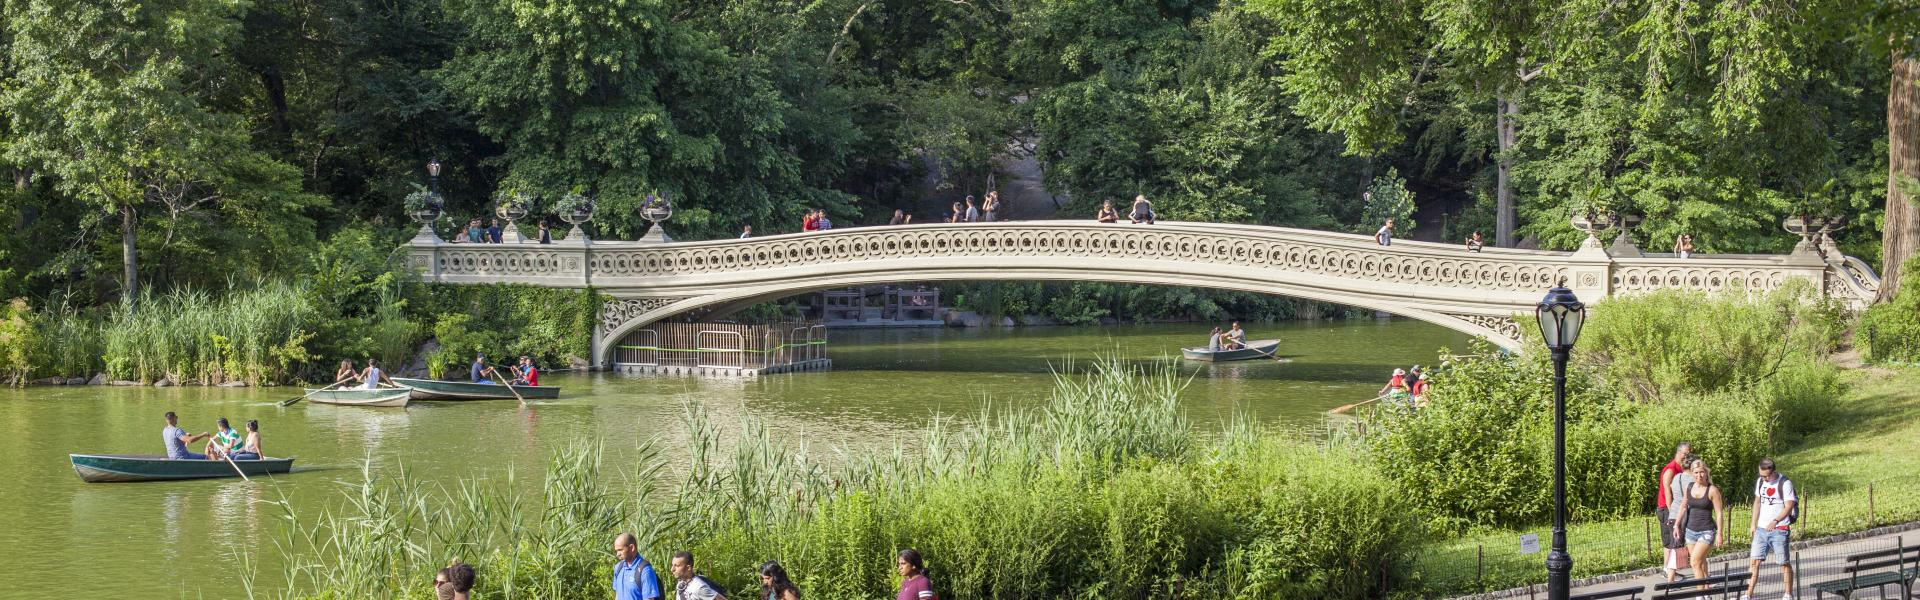 Central-Park-Manhattan-NYC-Christopher-Postlewaite-6688 (1)